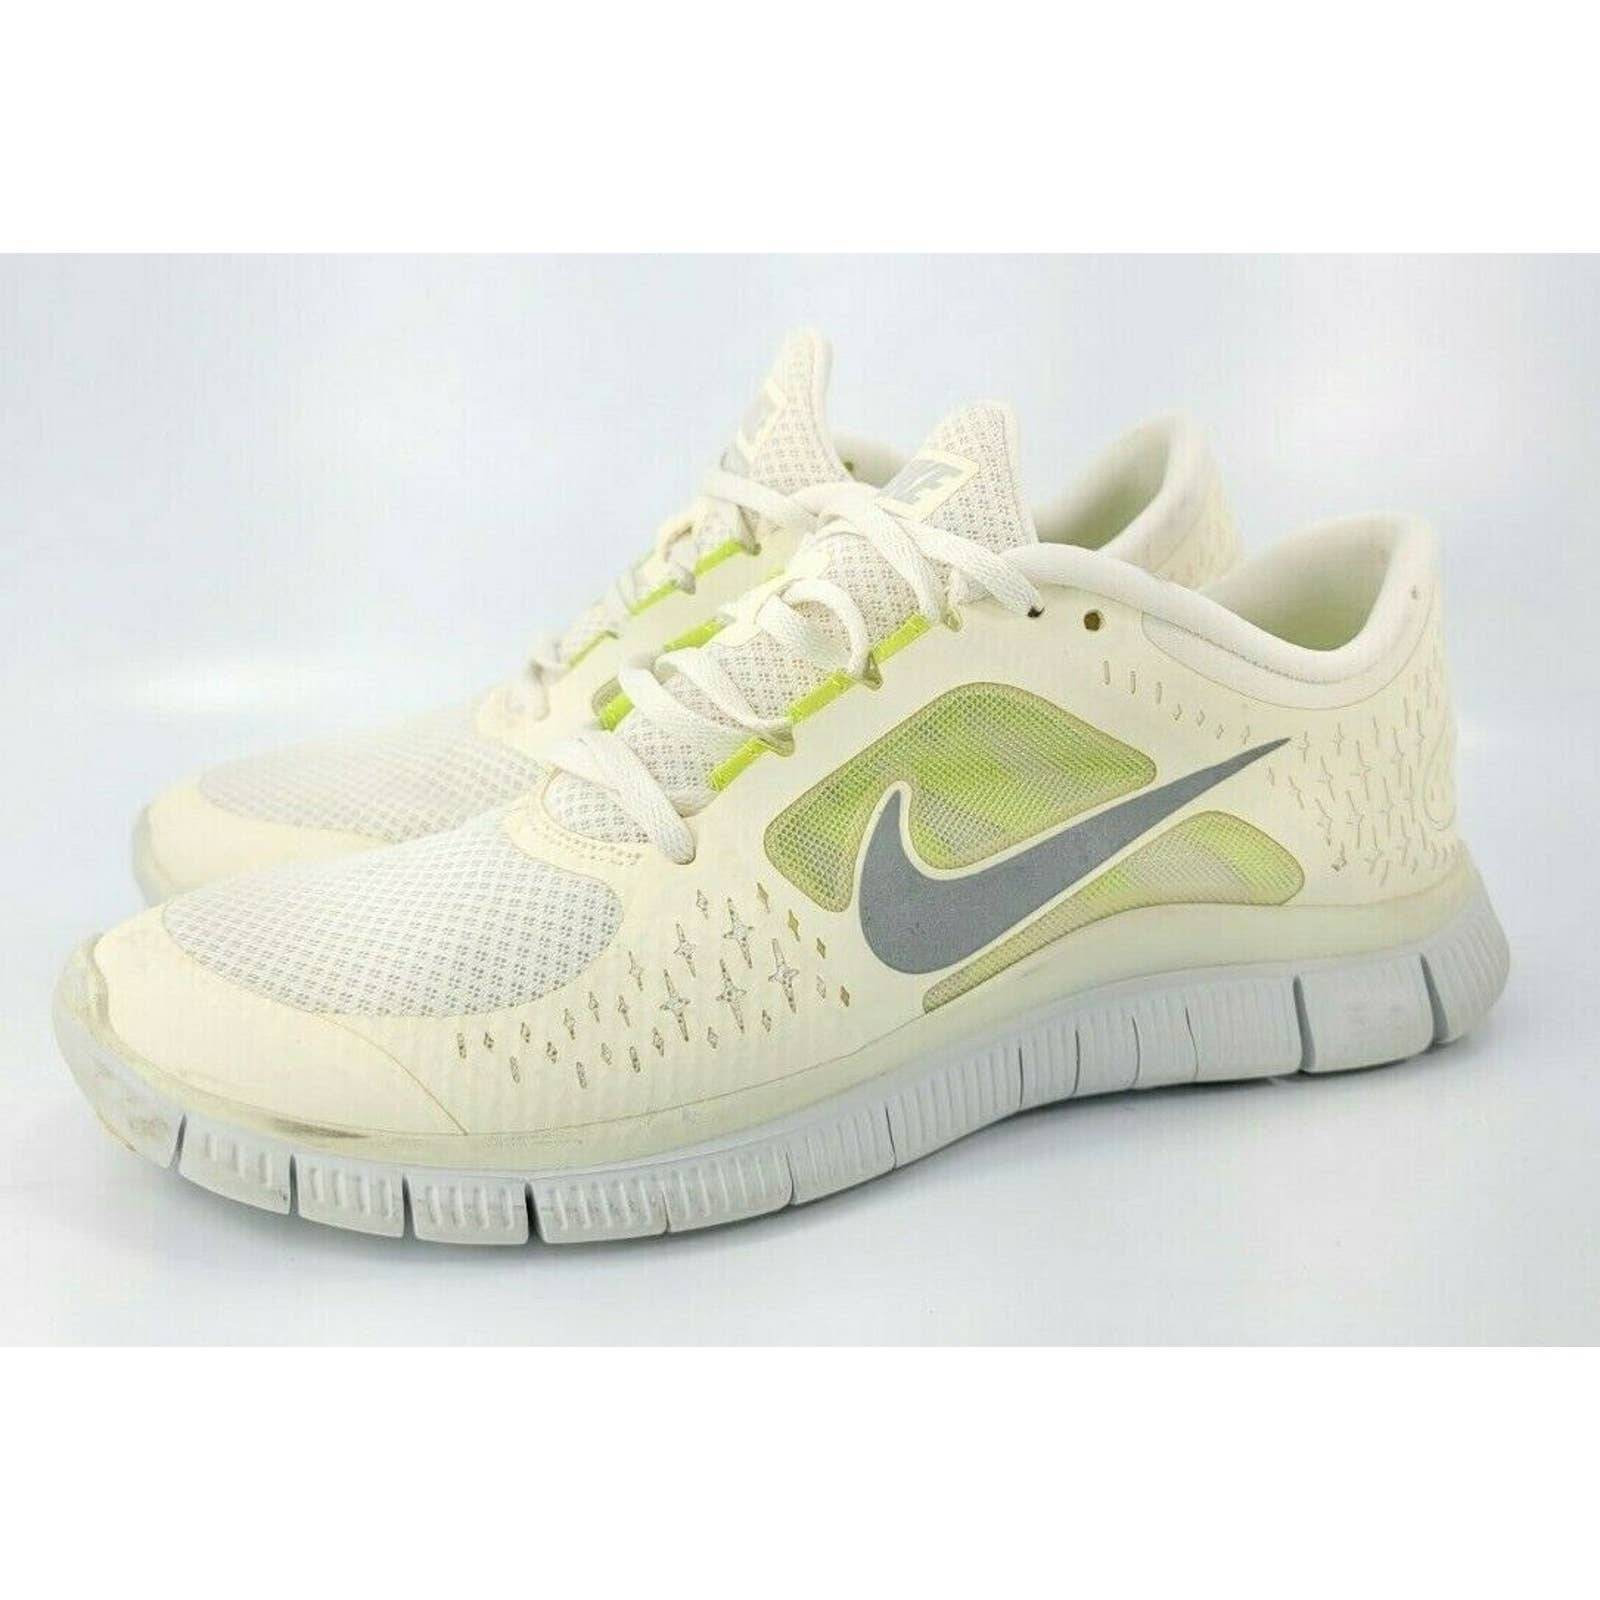 Nike Free Run 3 Running Trainer Shoe